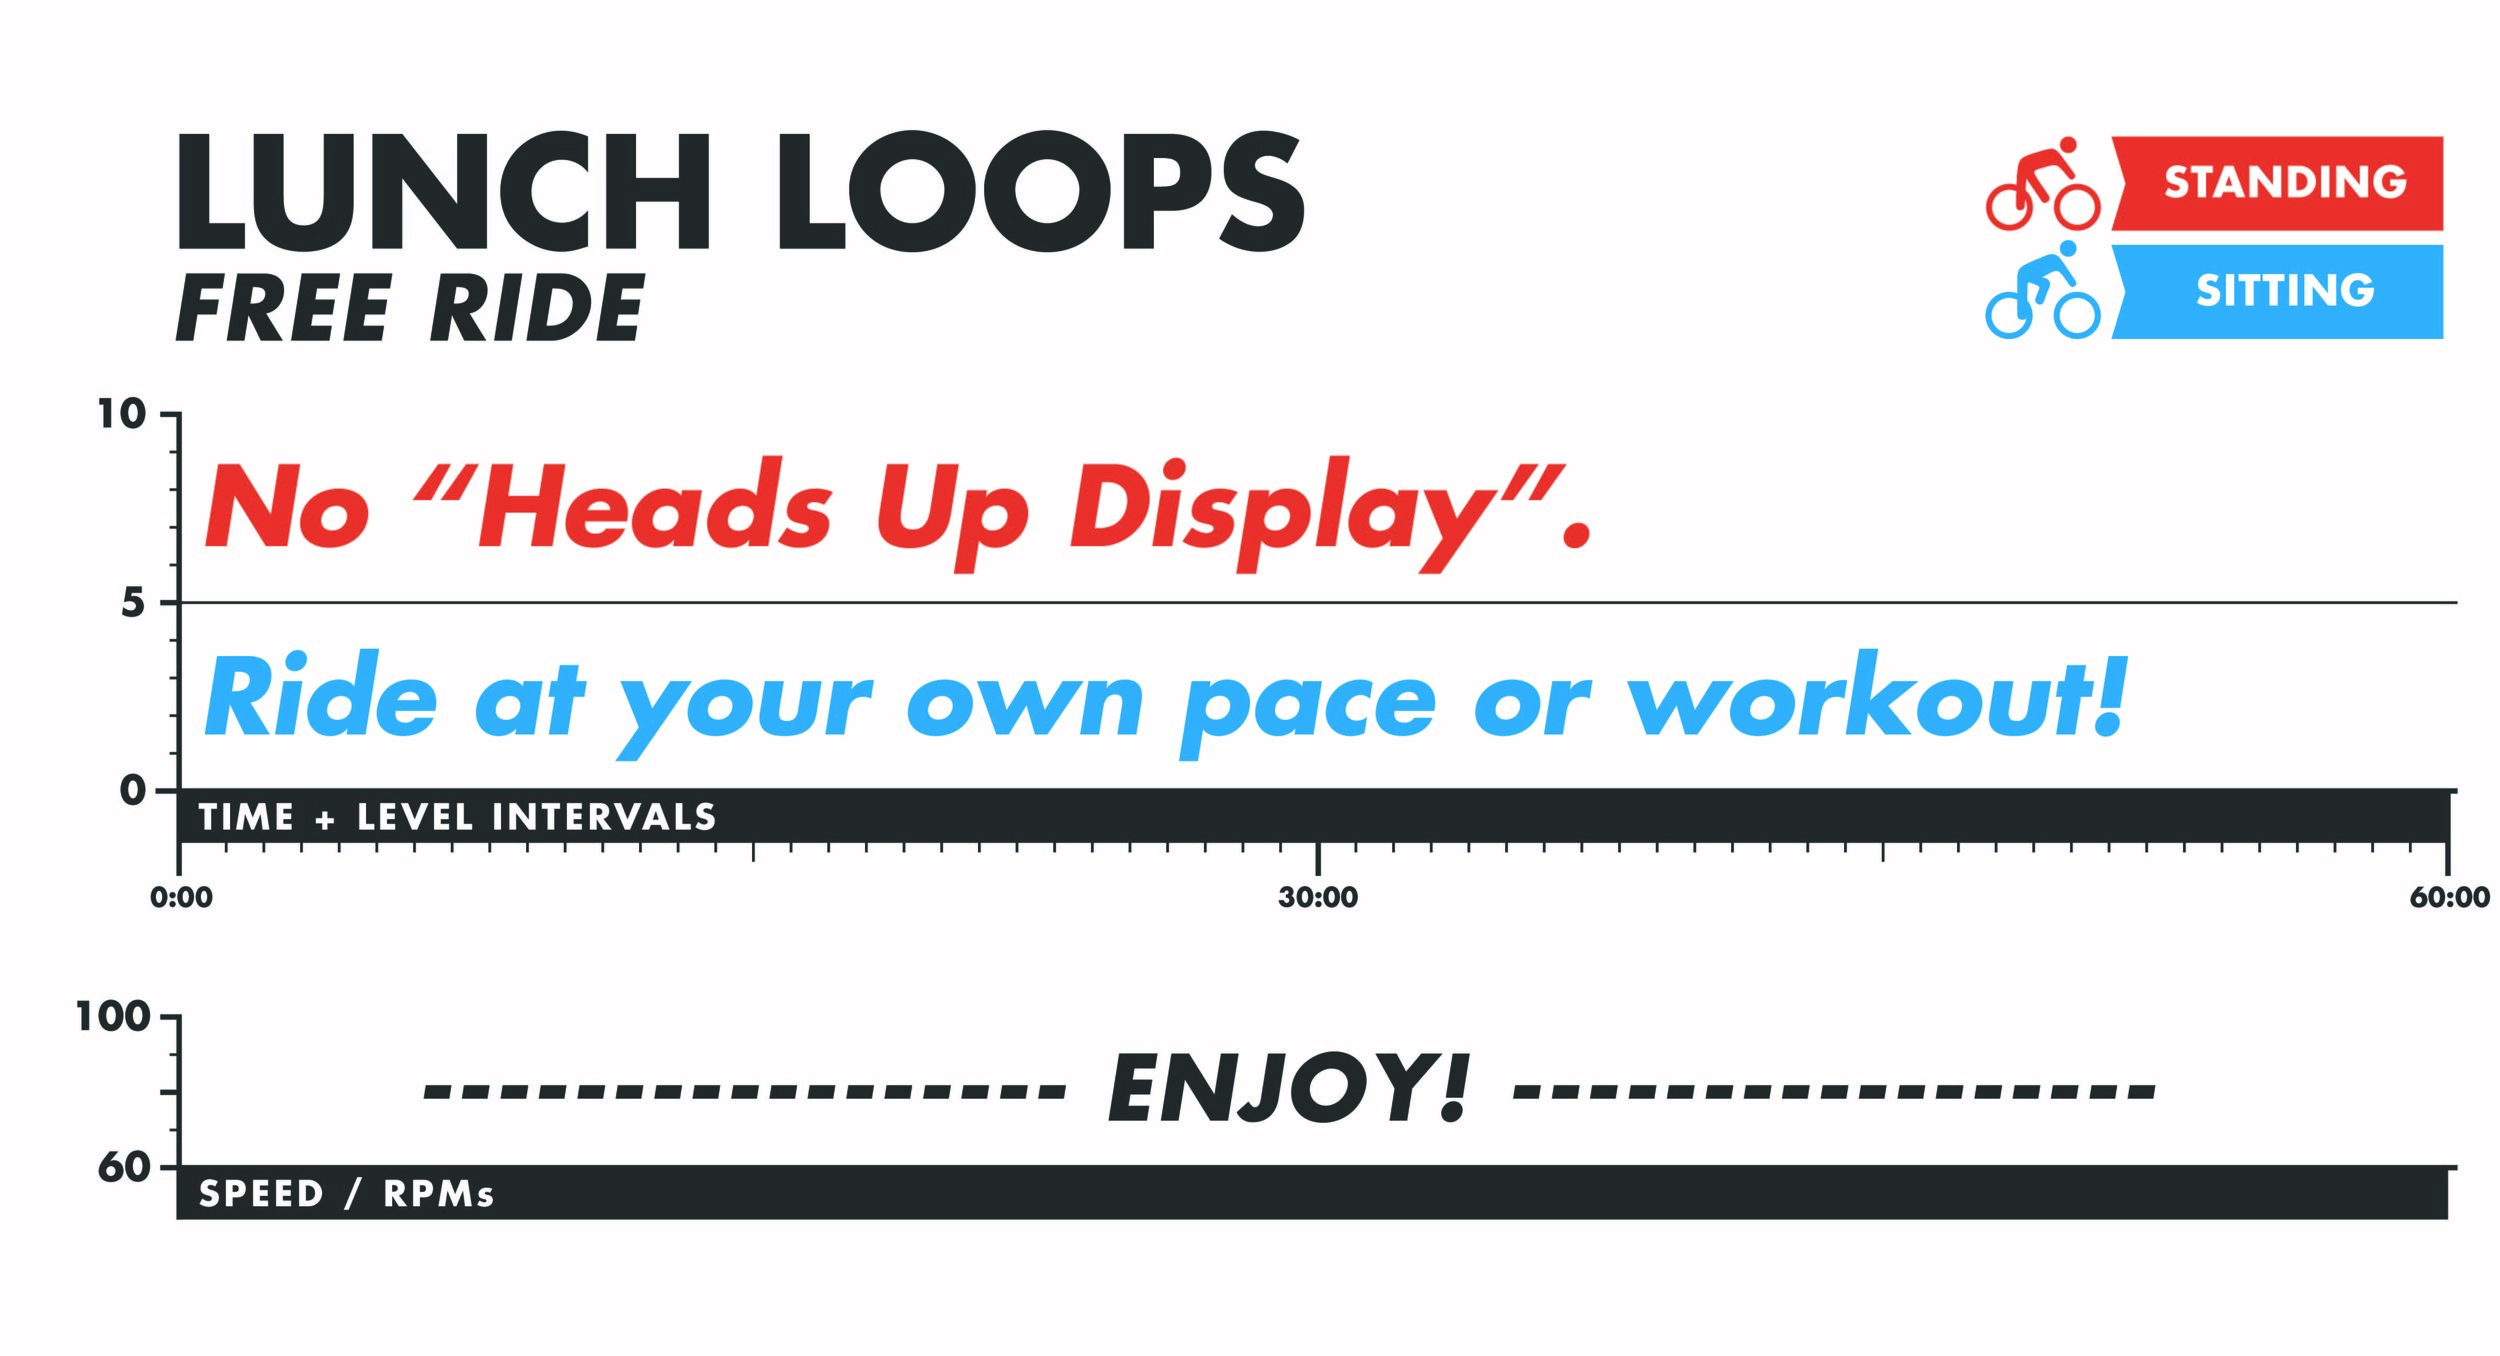 LUNCH LOOPS-FREE RIDE Info-Graphic.jpg